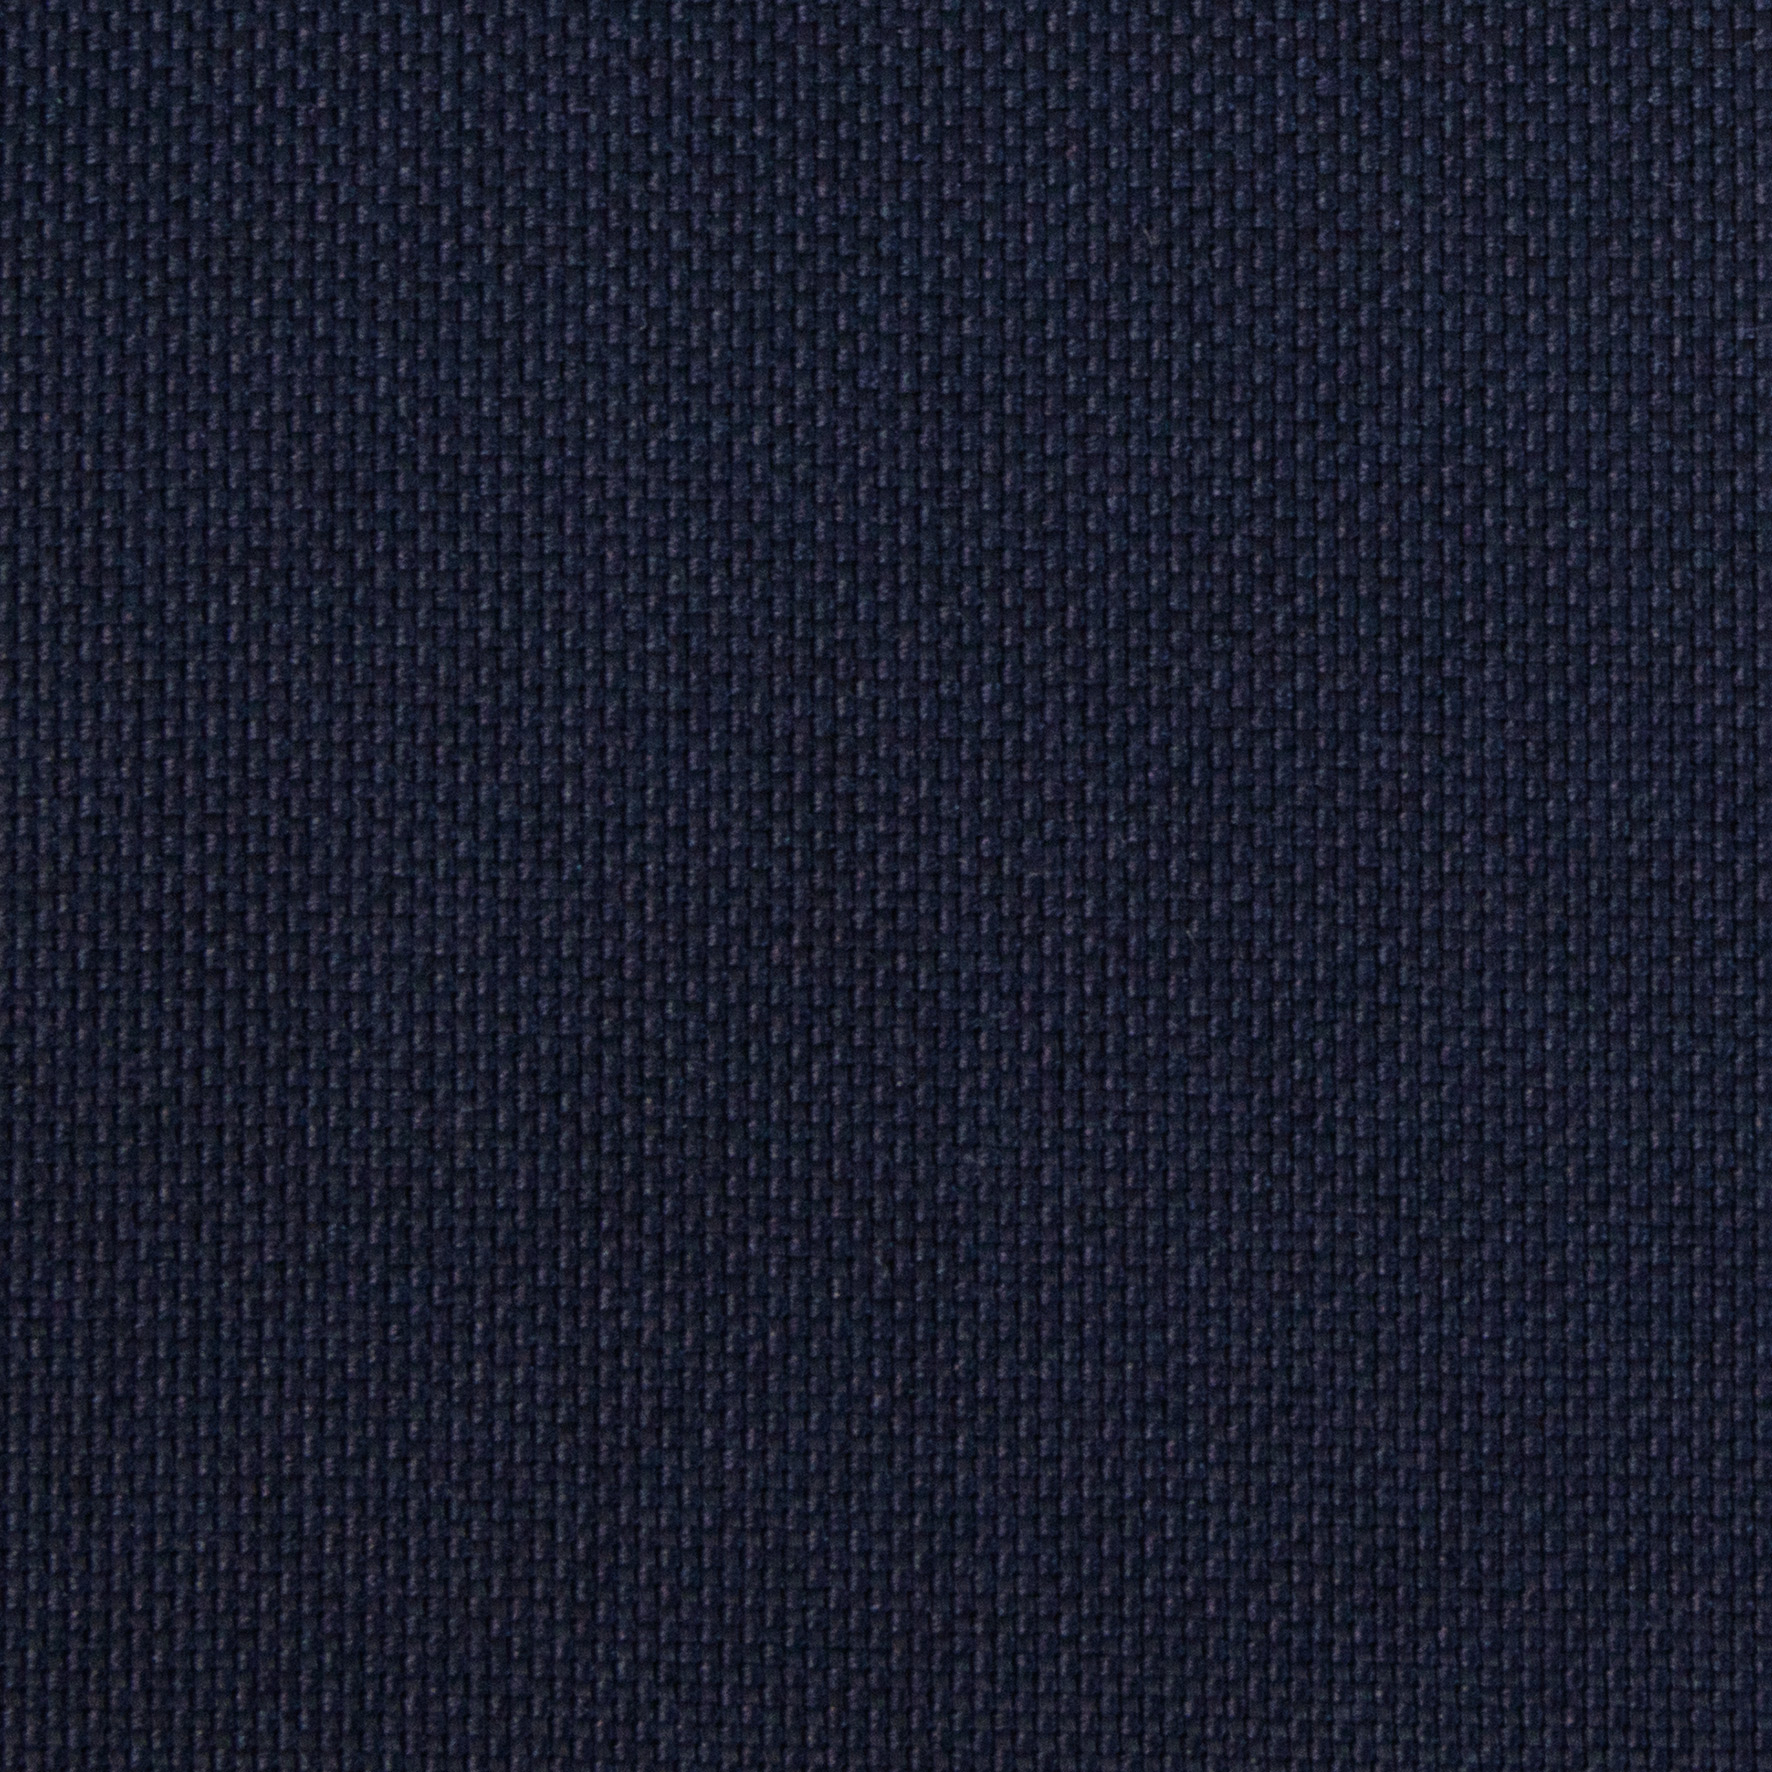 Buy tailor made shirts online - Antonio Range - Royal Blue Diamond Weave